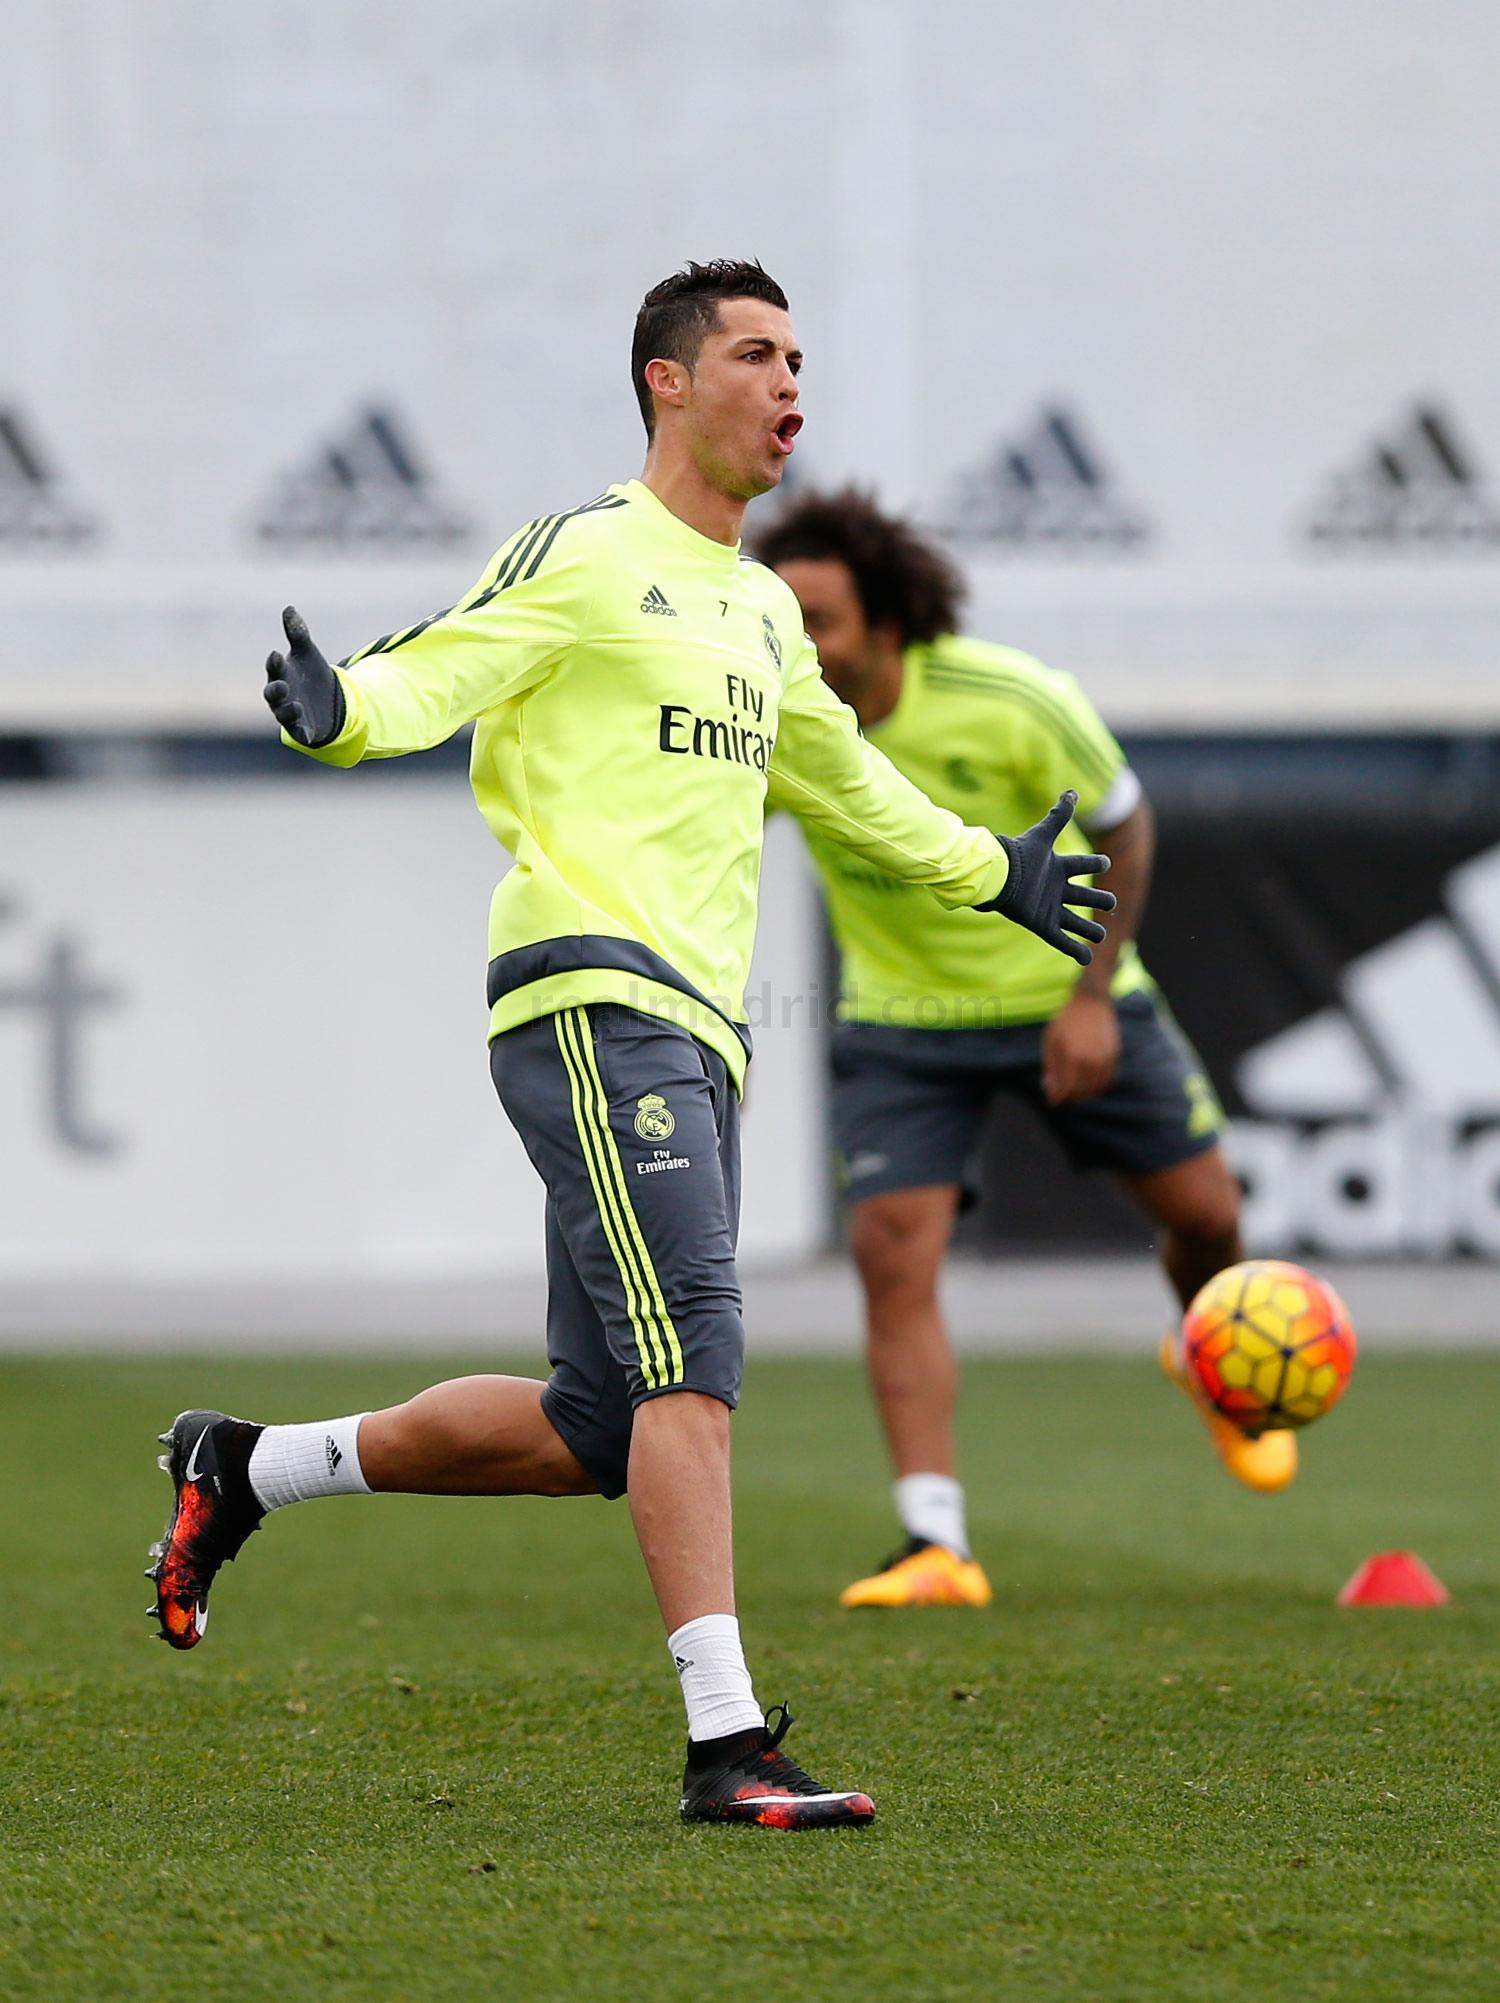 Real Madrid - Entrenamiento del Real Madrid - 29-01-2016